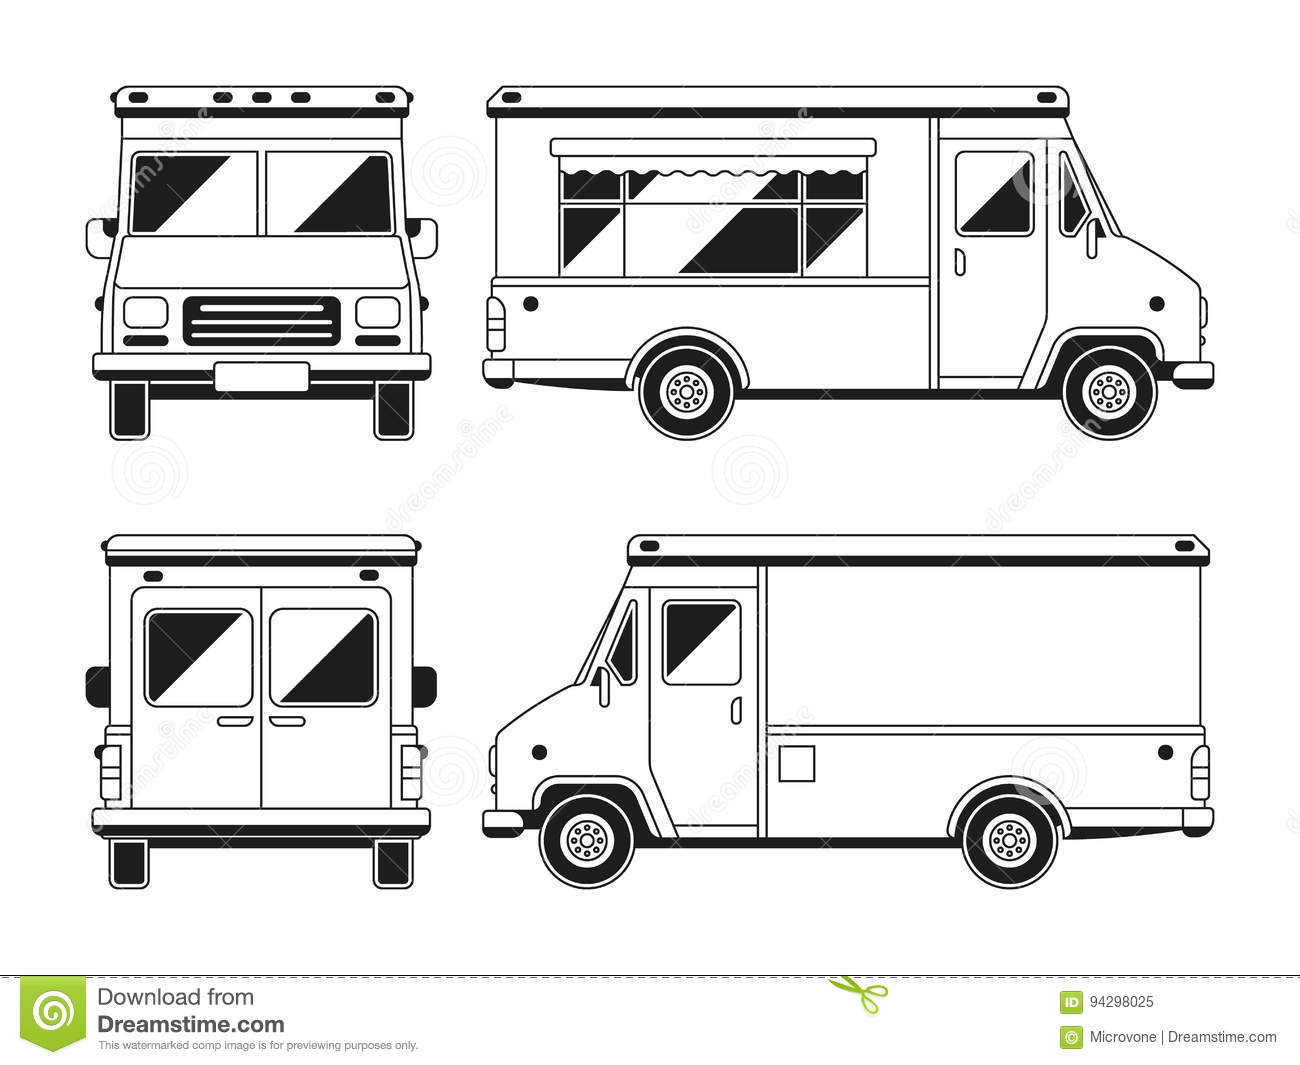 blank food truck drawing sketch coloring page